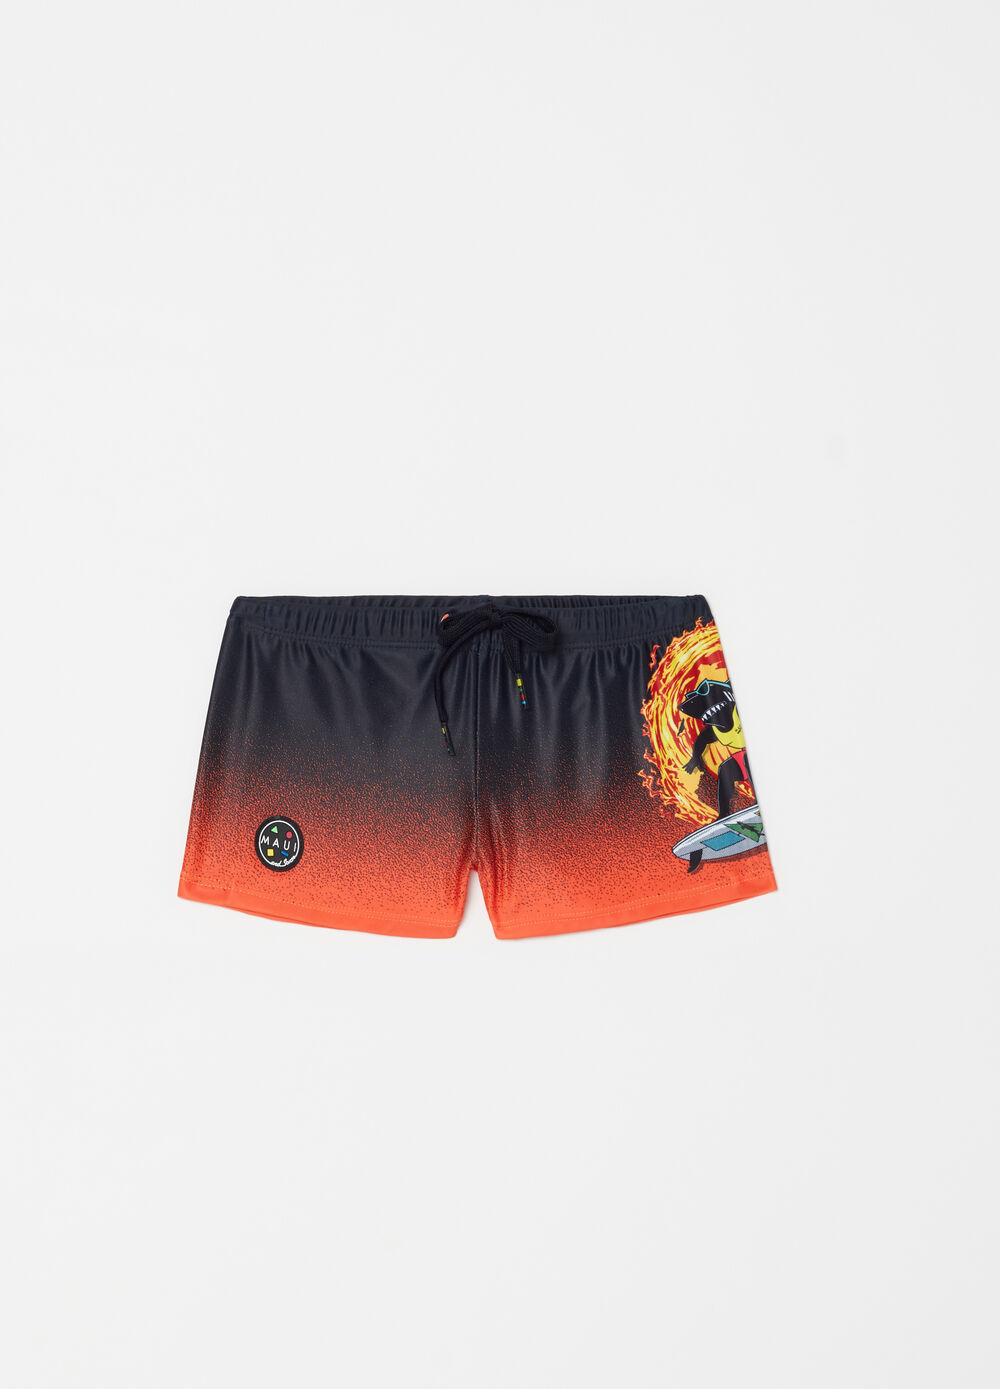 Degradé boxer shorts by Maui and Sons